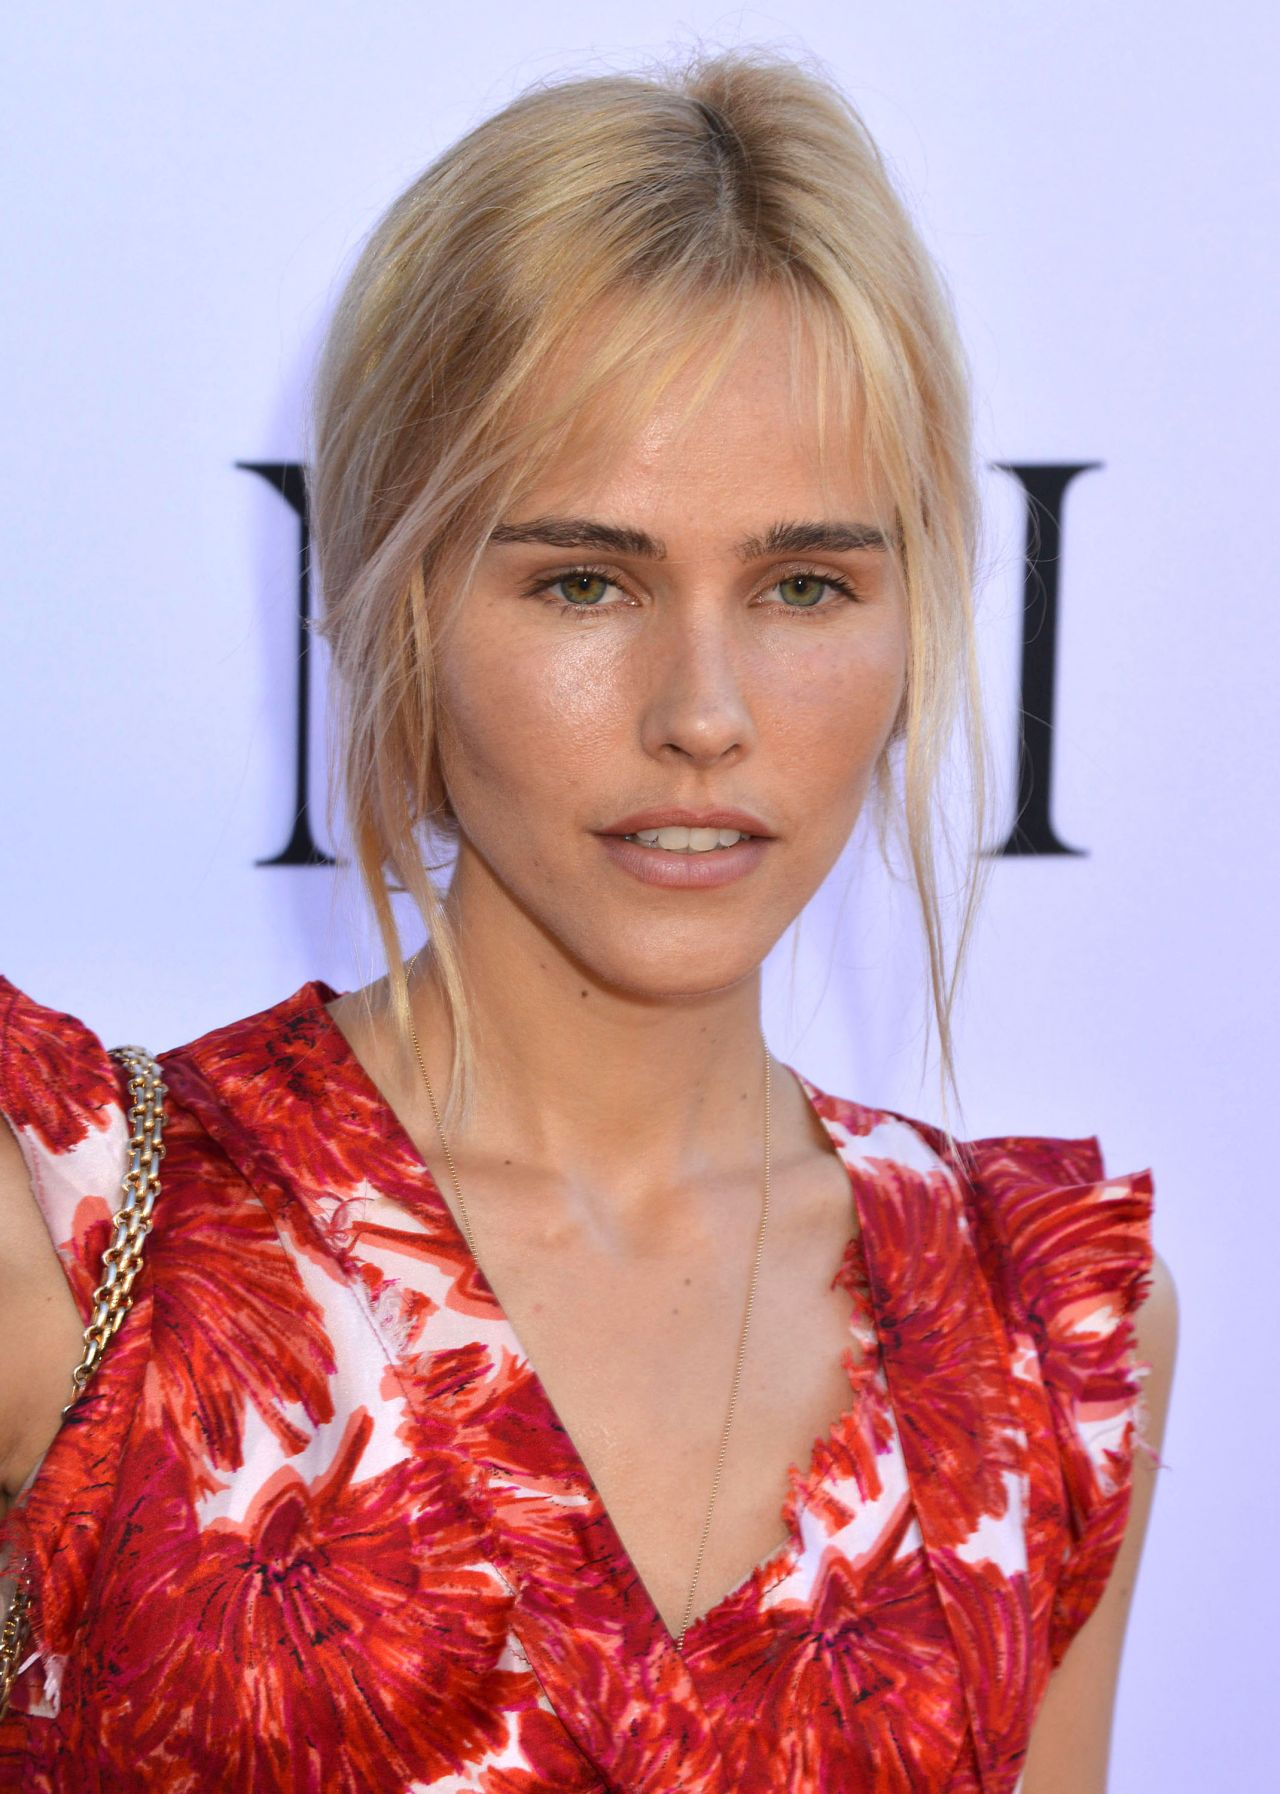 isabel lucas - photo #22